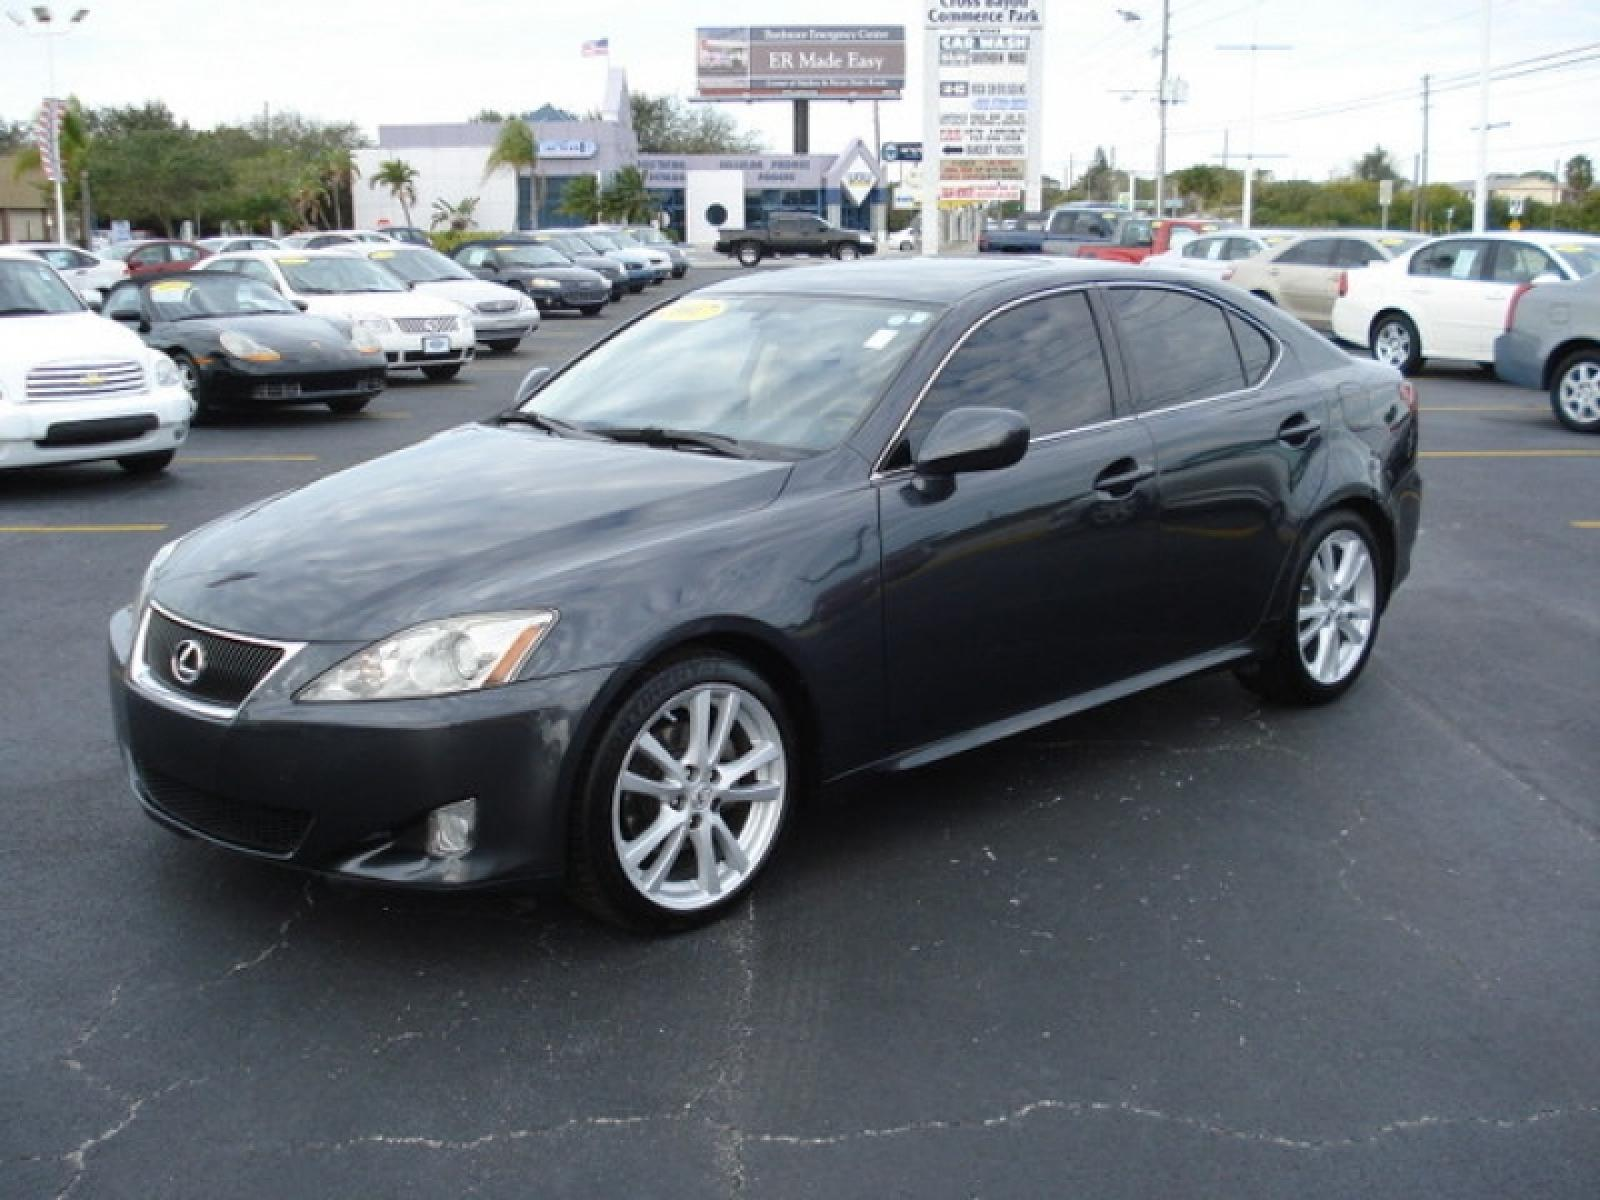 2007 lexus is 250 information and photos zombiedrive. Black Bedroom Furniture Sets. Home Design Ideas